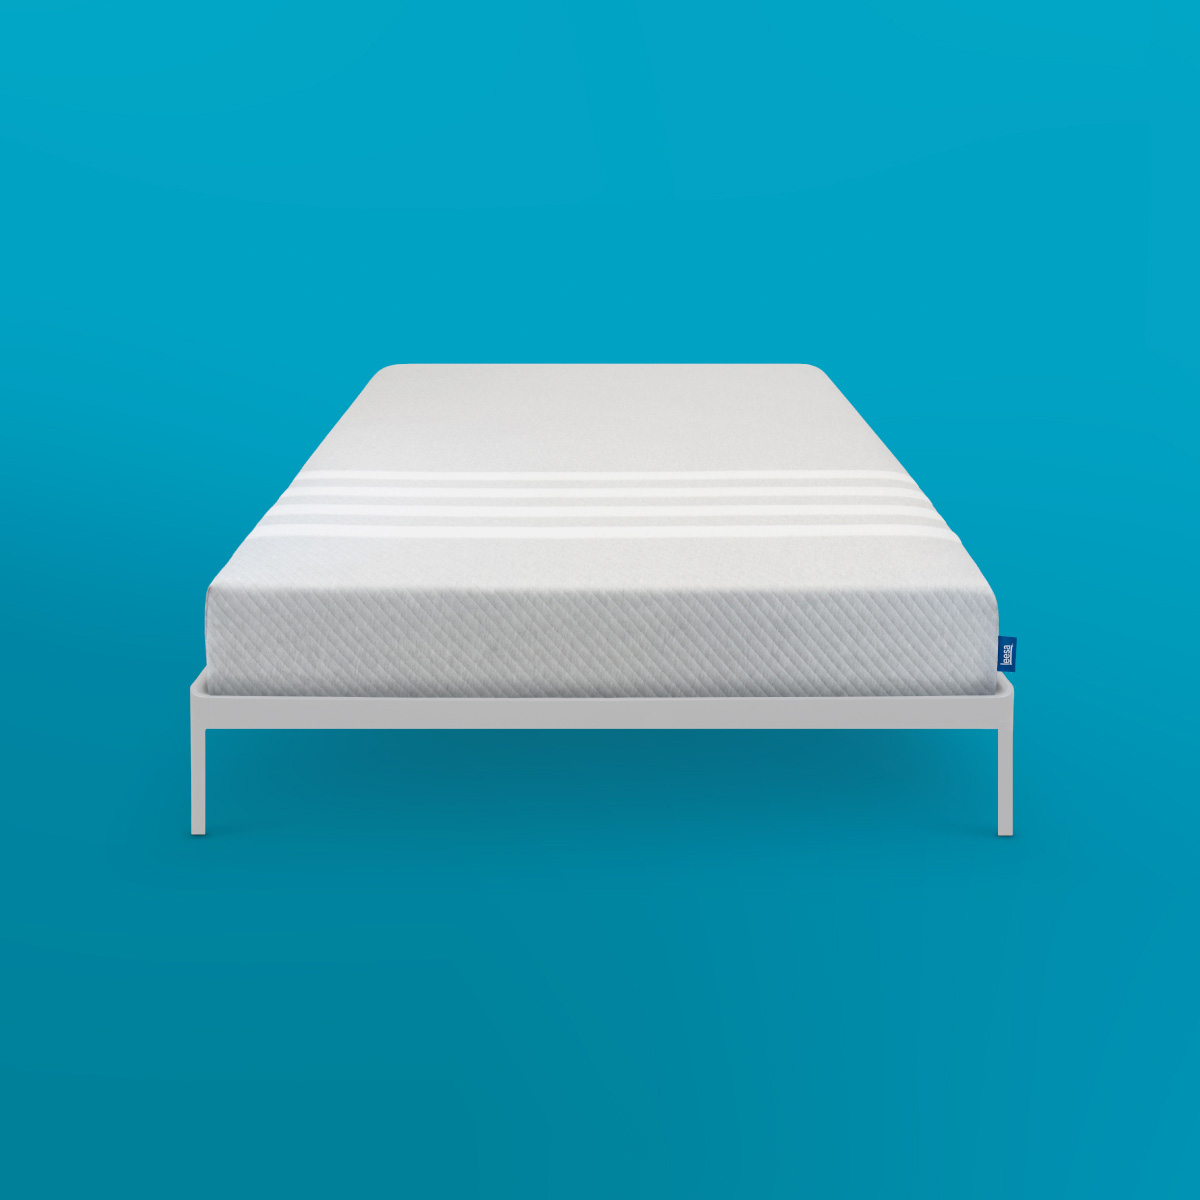 The Leesa Mattress A Better Place To Sleep Try riskfree